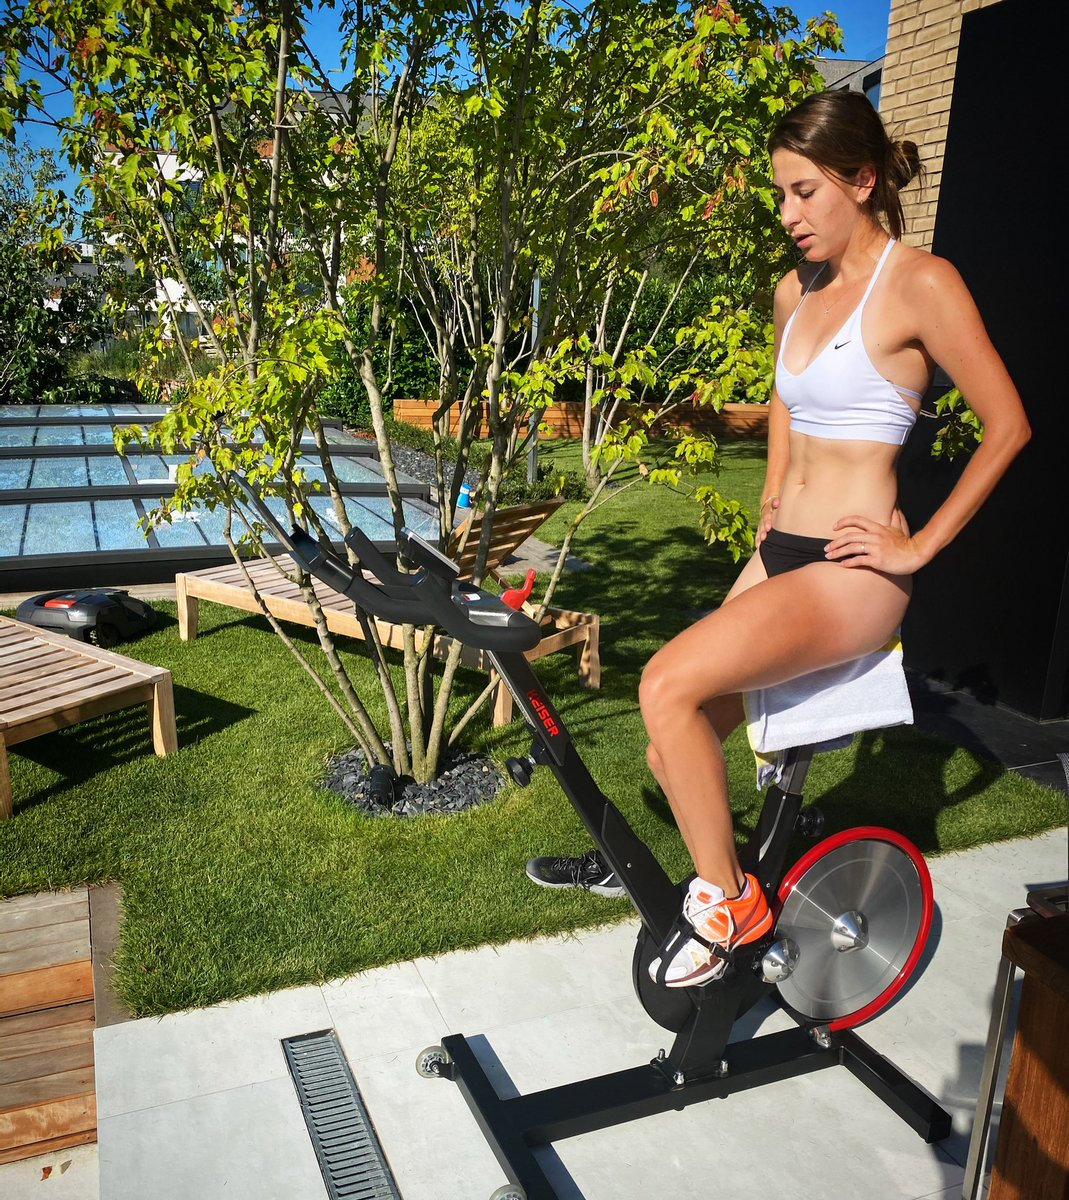 Early Saturday Summer Home Workout💪🏽💦 @KeiserFitness https://t.co/4usbObobHP